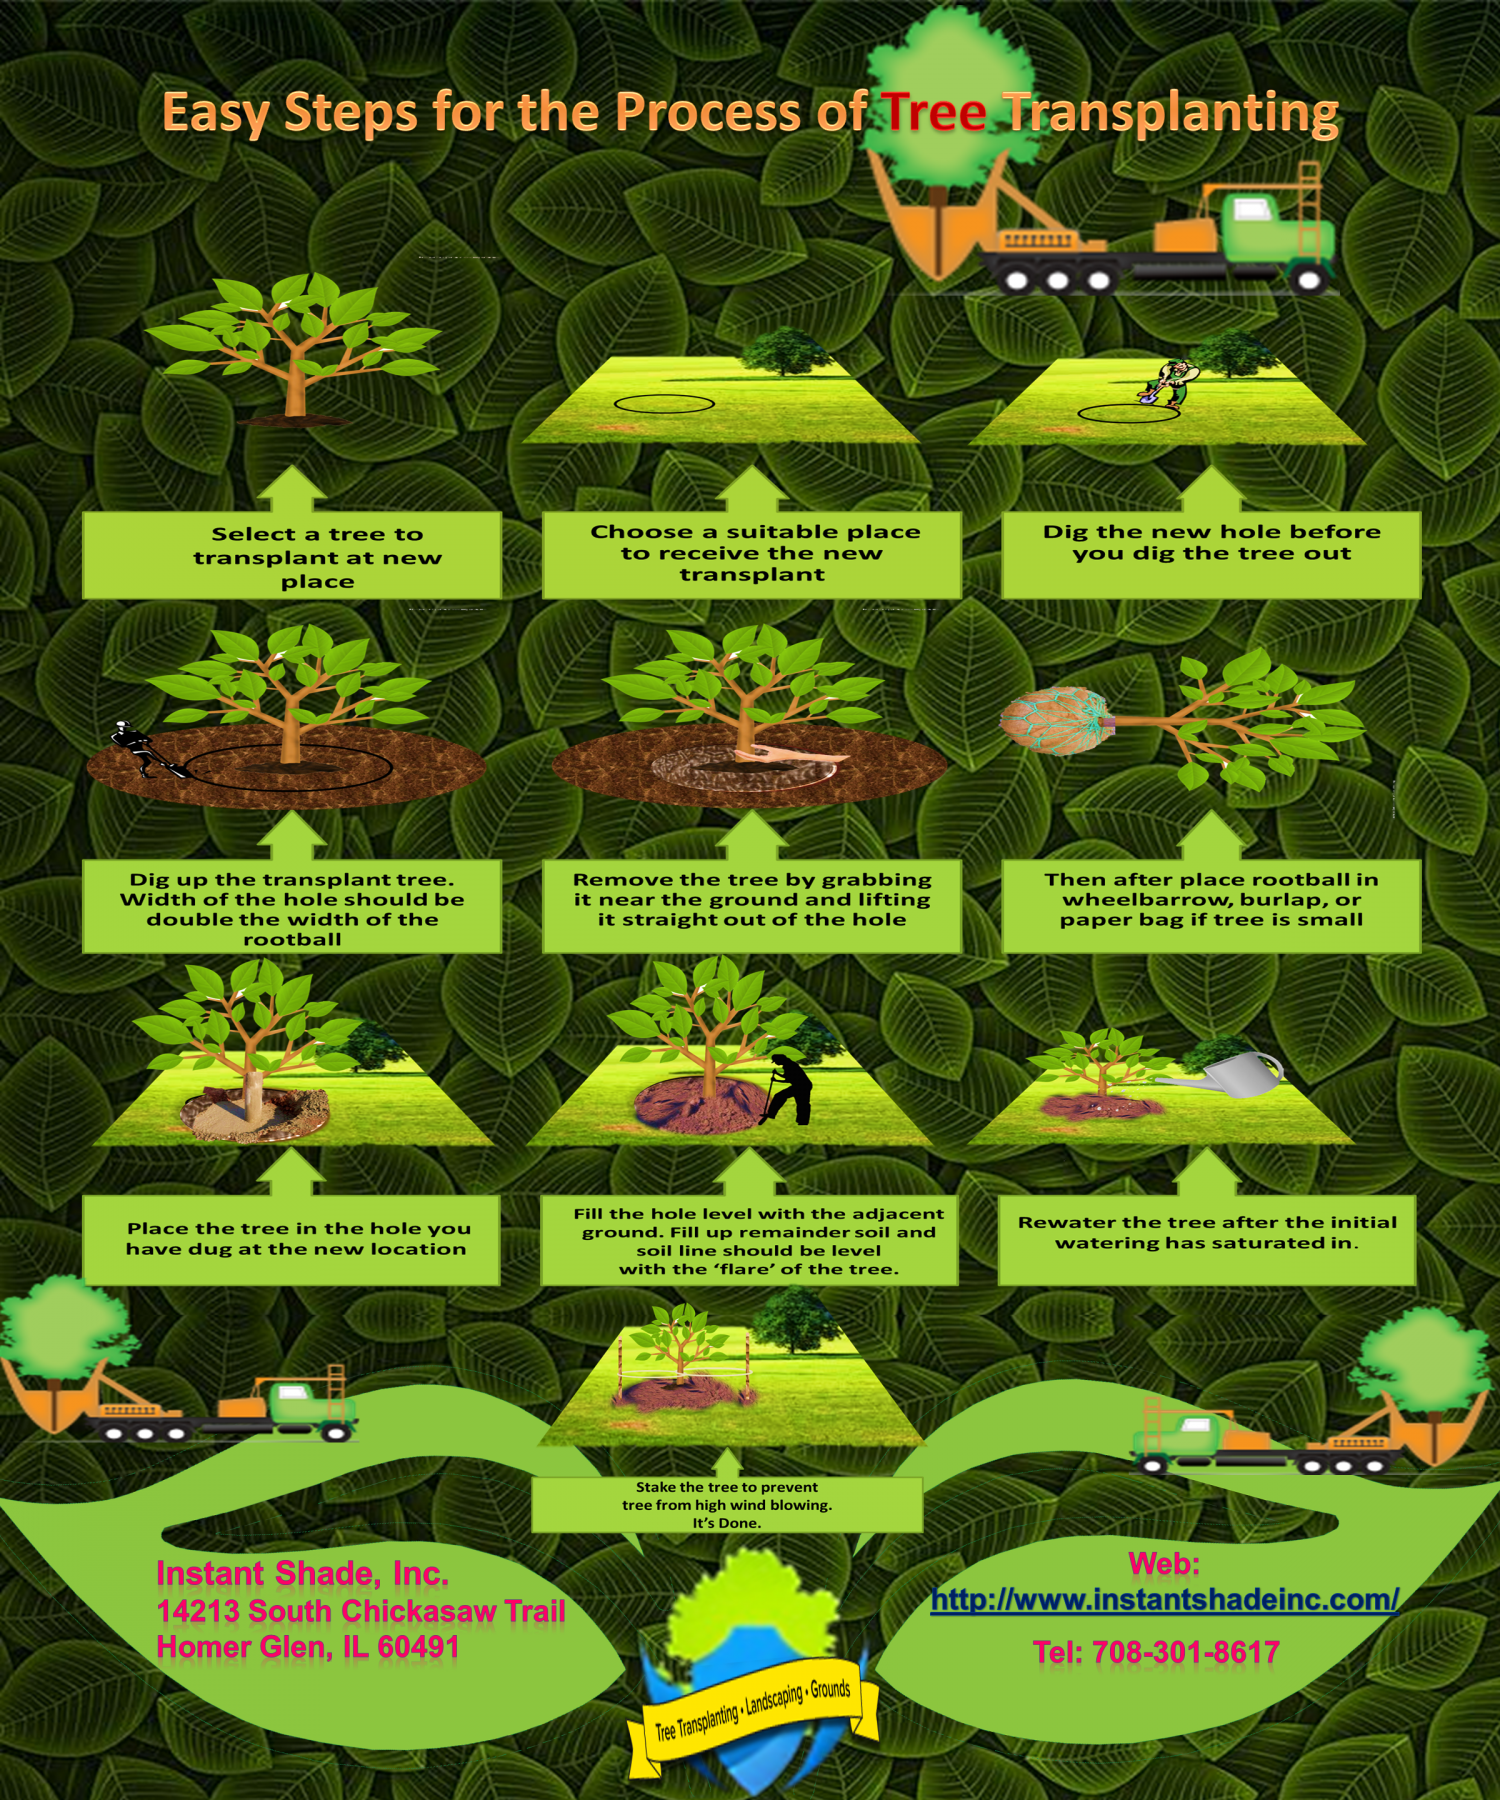 Easy Steps for the Process of Tree Transplanting Infographic